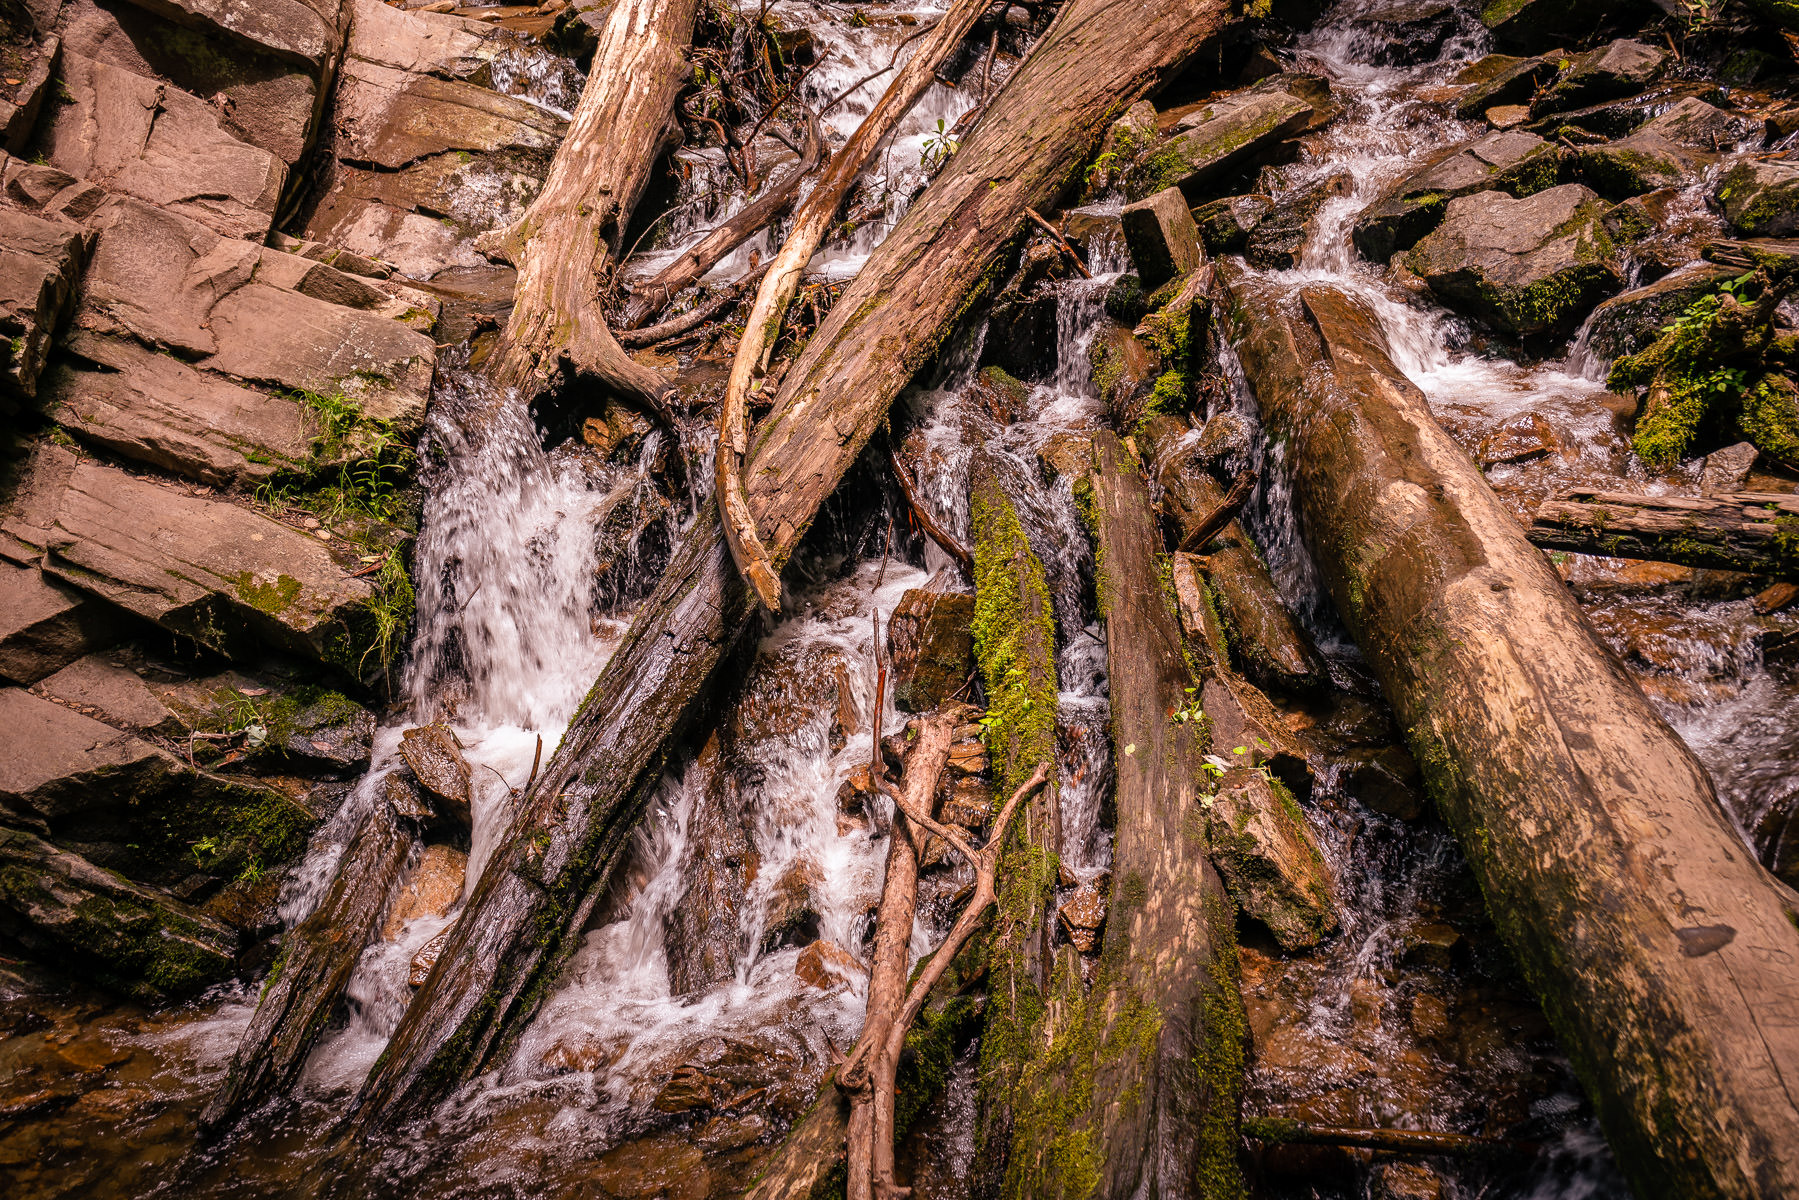 Water flows past logs at the base of Mingo Falls, Cherokee, North Carolina.